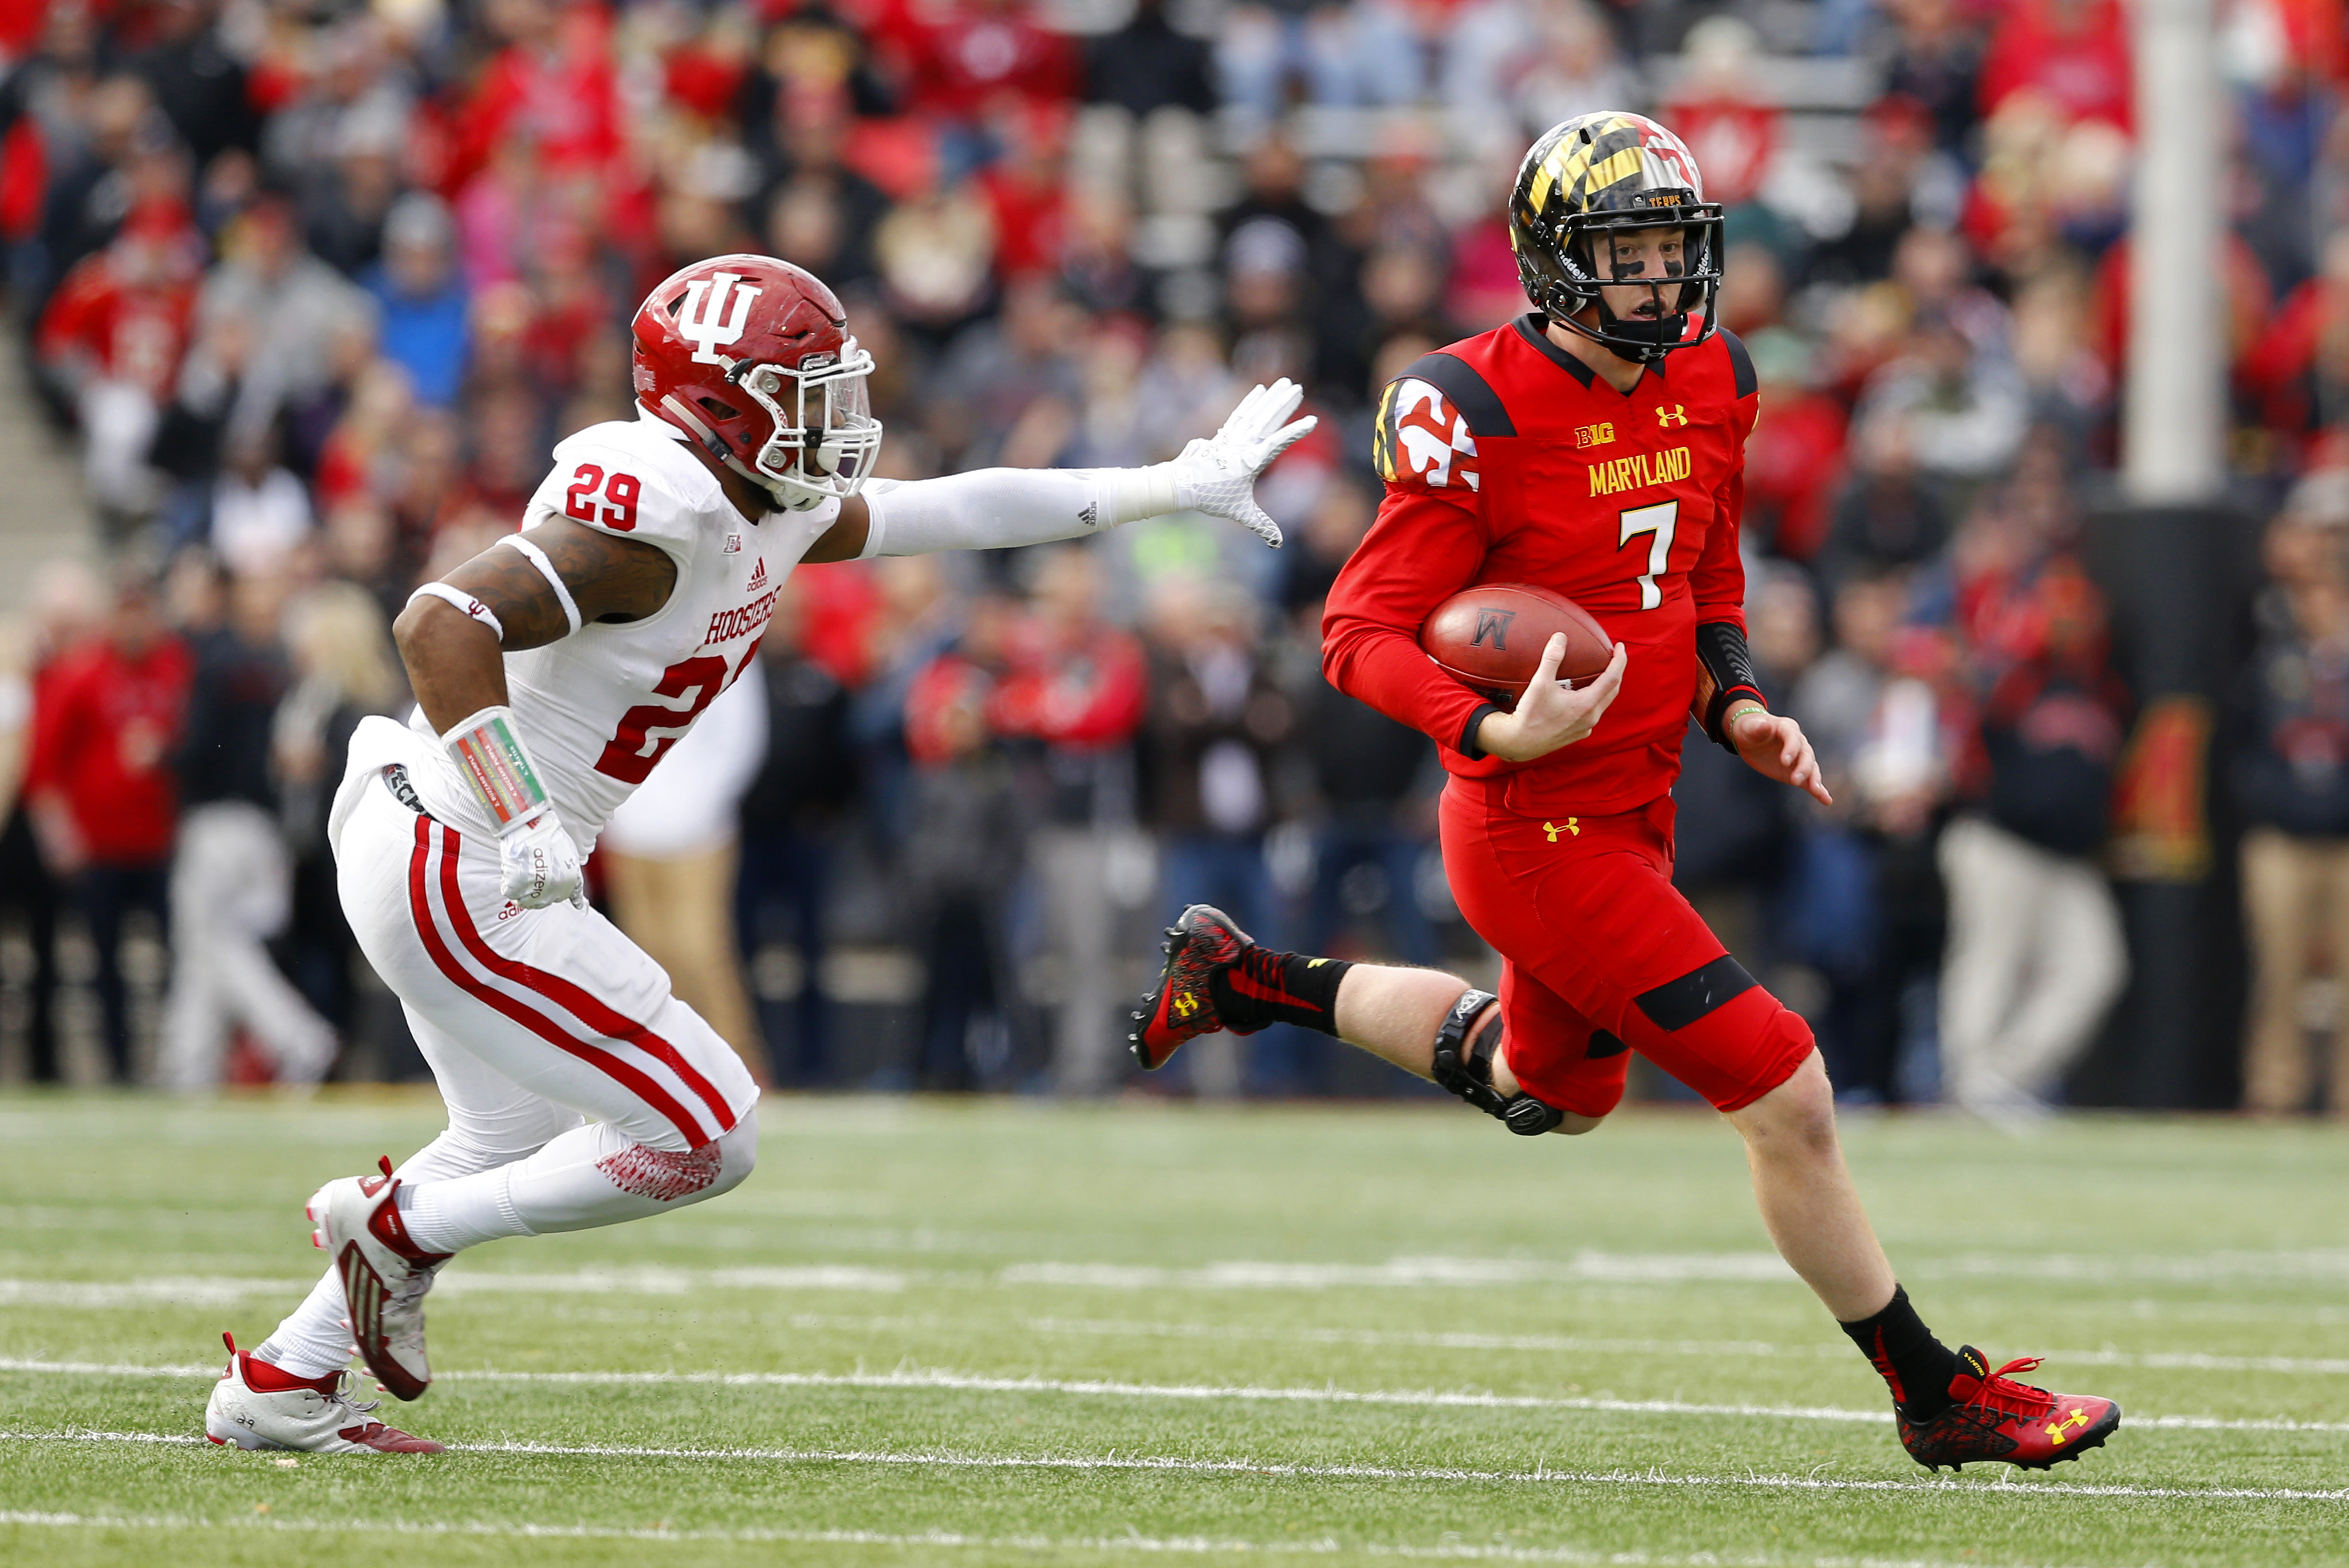 Maryland quarterback Caleb Rowe, right, rushes the ball past Indiana linebacker Dawson Fletcher in the first half of an NCAA college football game, Saturday, Nov. 21, 2015, in College Park, Md. (AP Photo/Patrick Semansky)